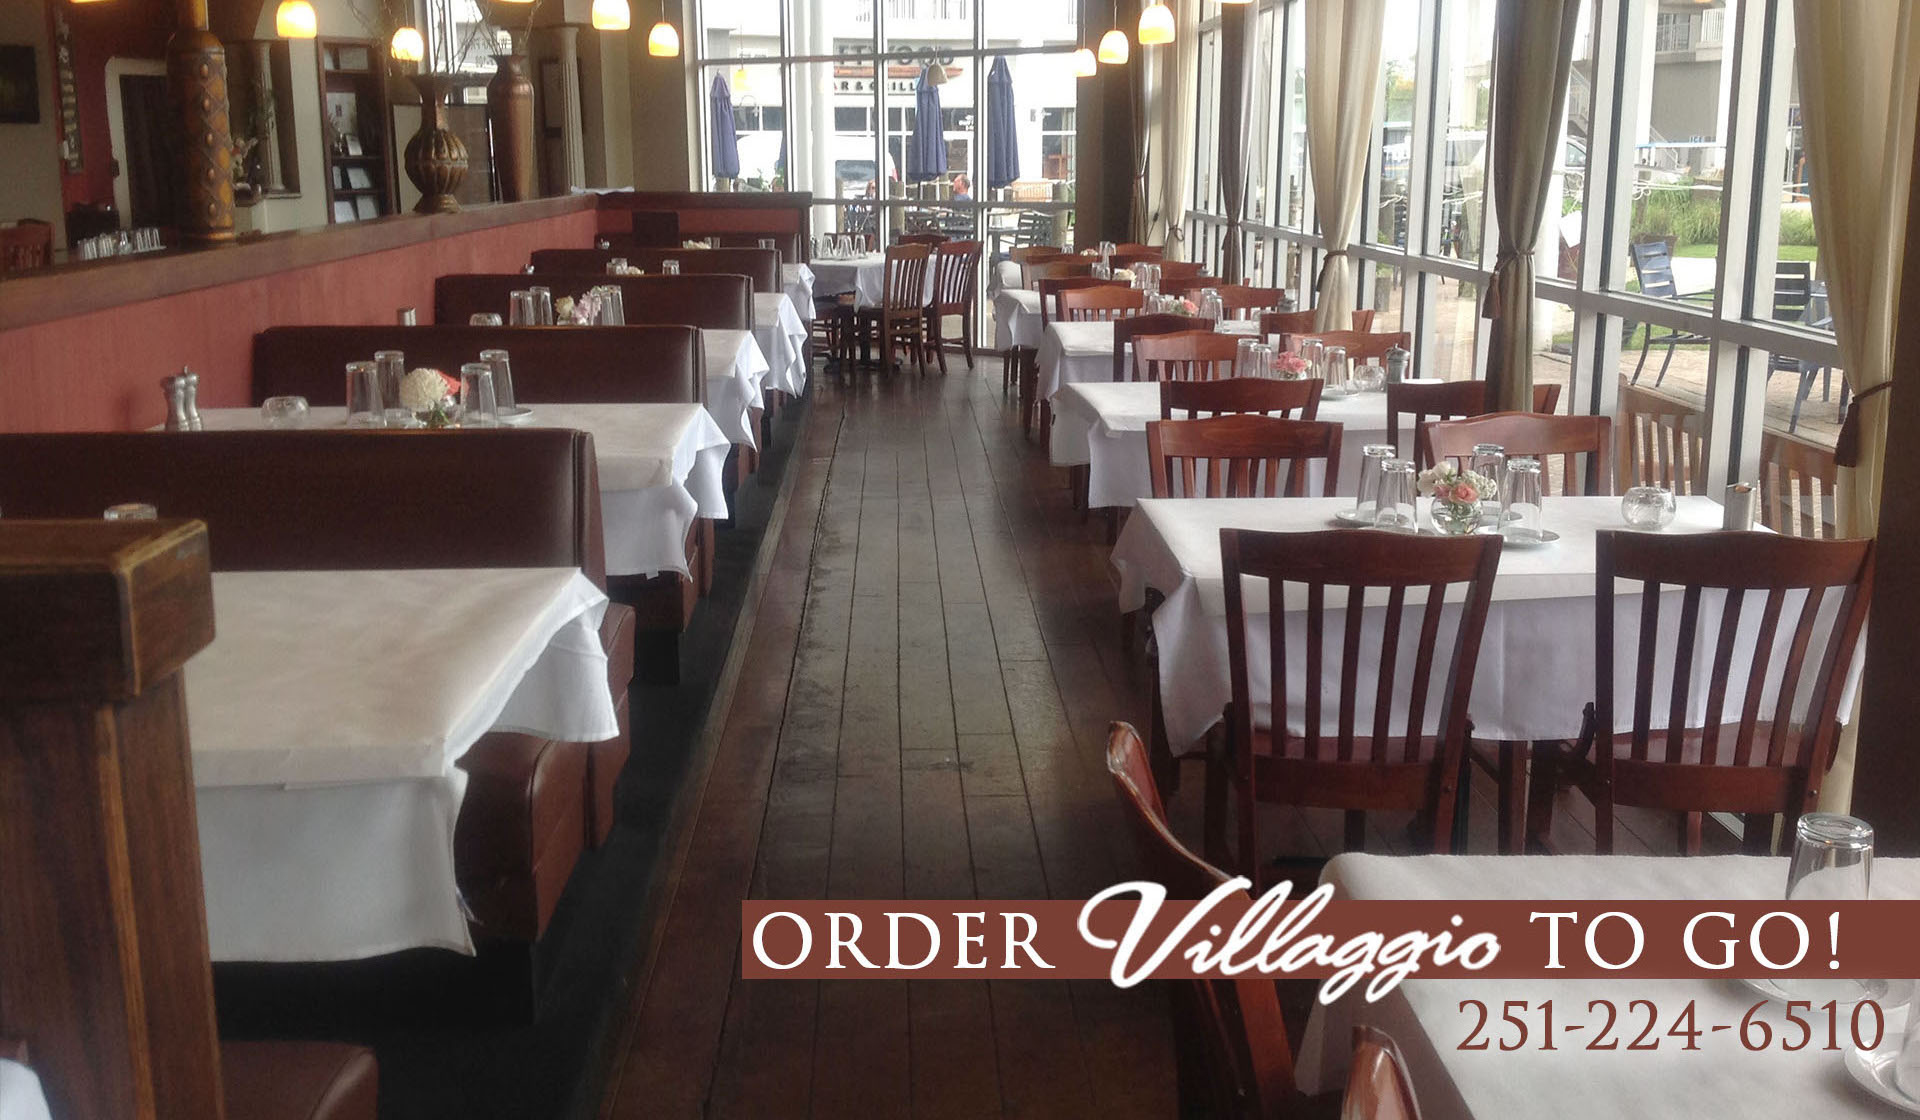 Togo orders at Villaggio Grille at The Wharf